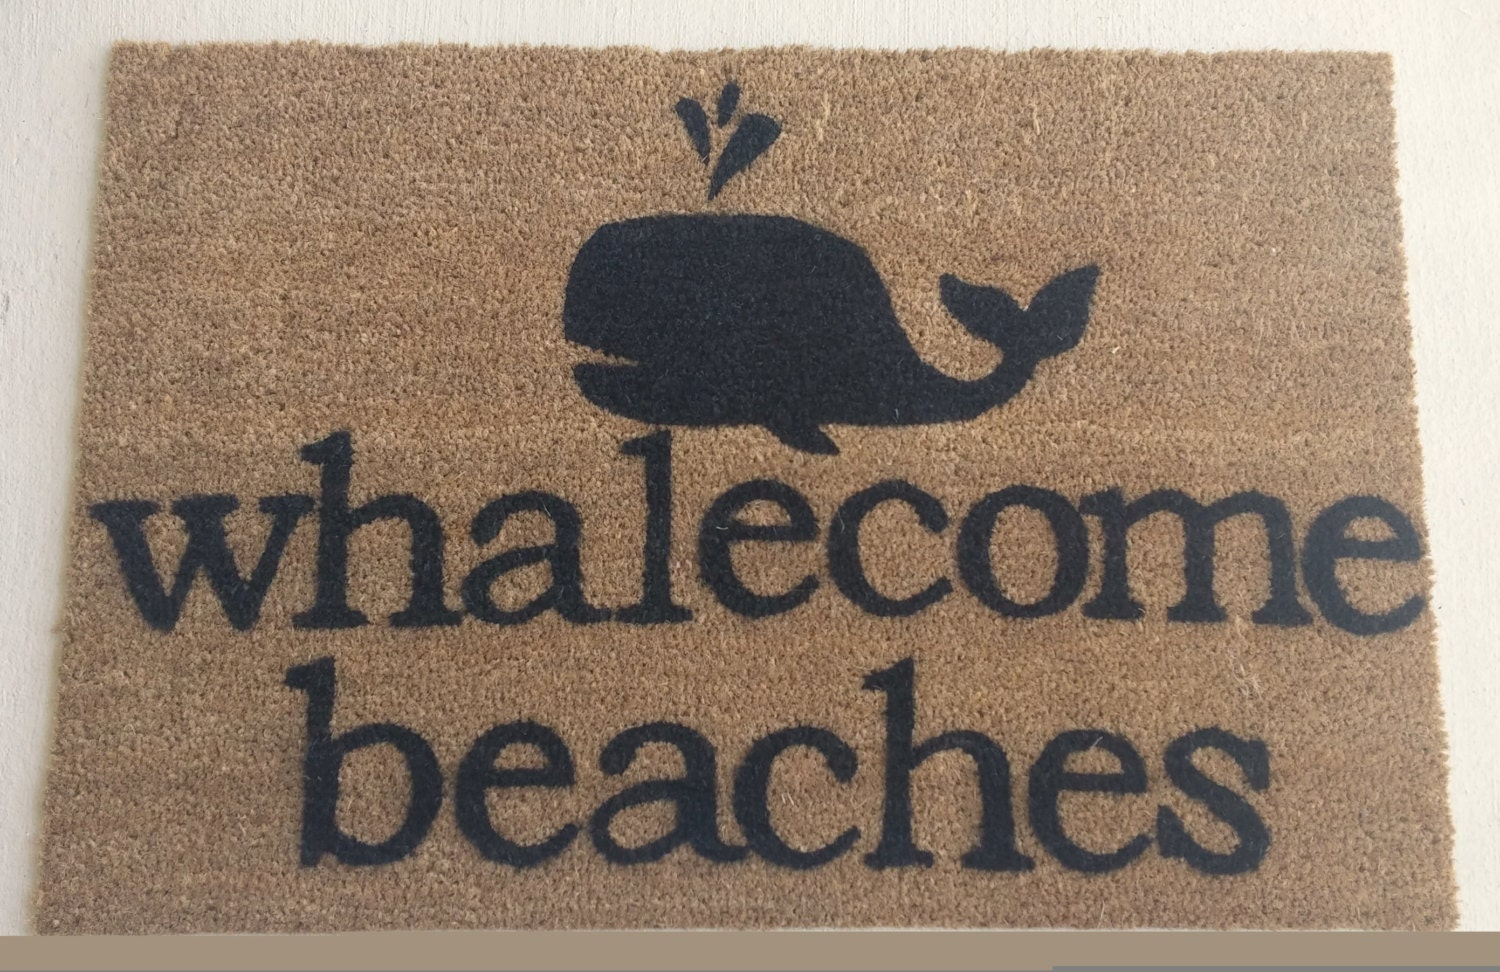 Whalecome Beaches Doormat By Justsmilealways On Etsy